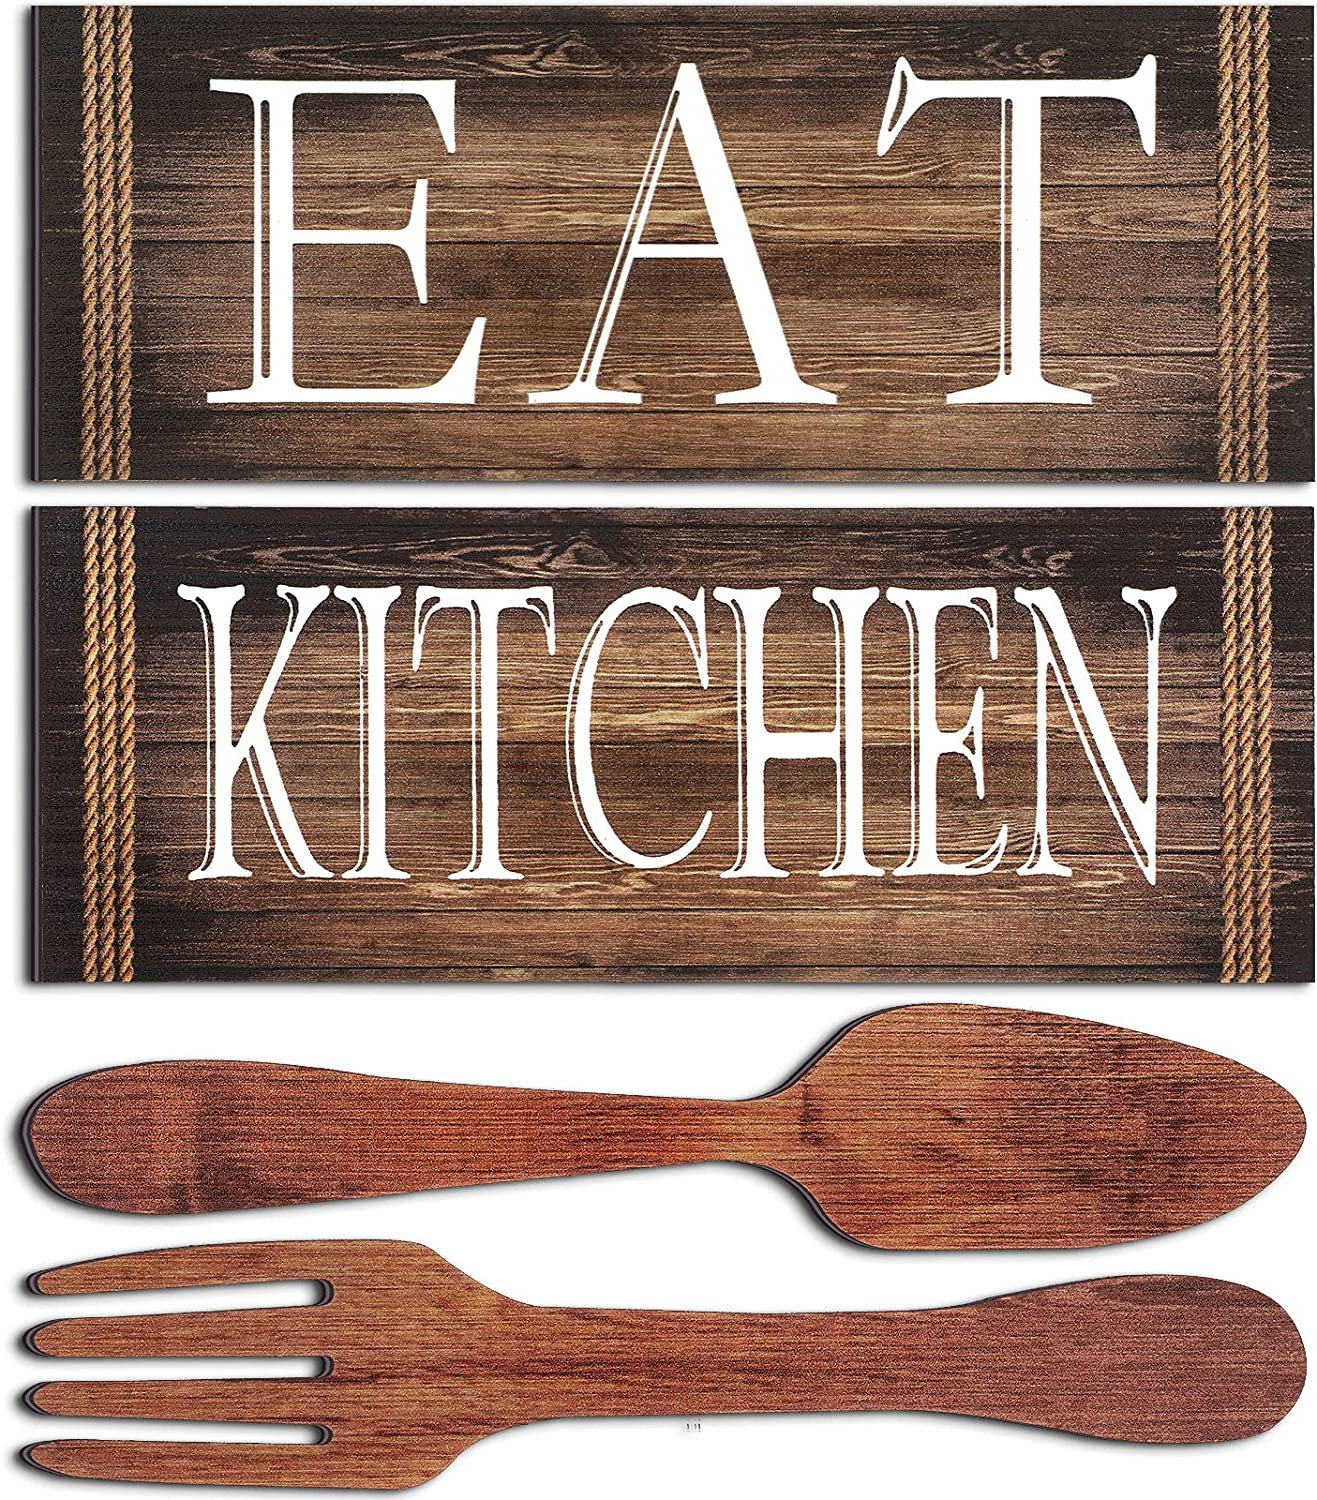 Jetec 4 Pieces Kitchen Signs Eat Signs Fork and Spoon Wall Decor Wood Rustic Kitchen Decoration Farmhouse Kitchen Wall Decor for Home Dining Room Housewarming Kitchen Decor